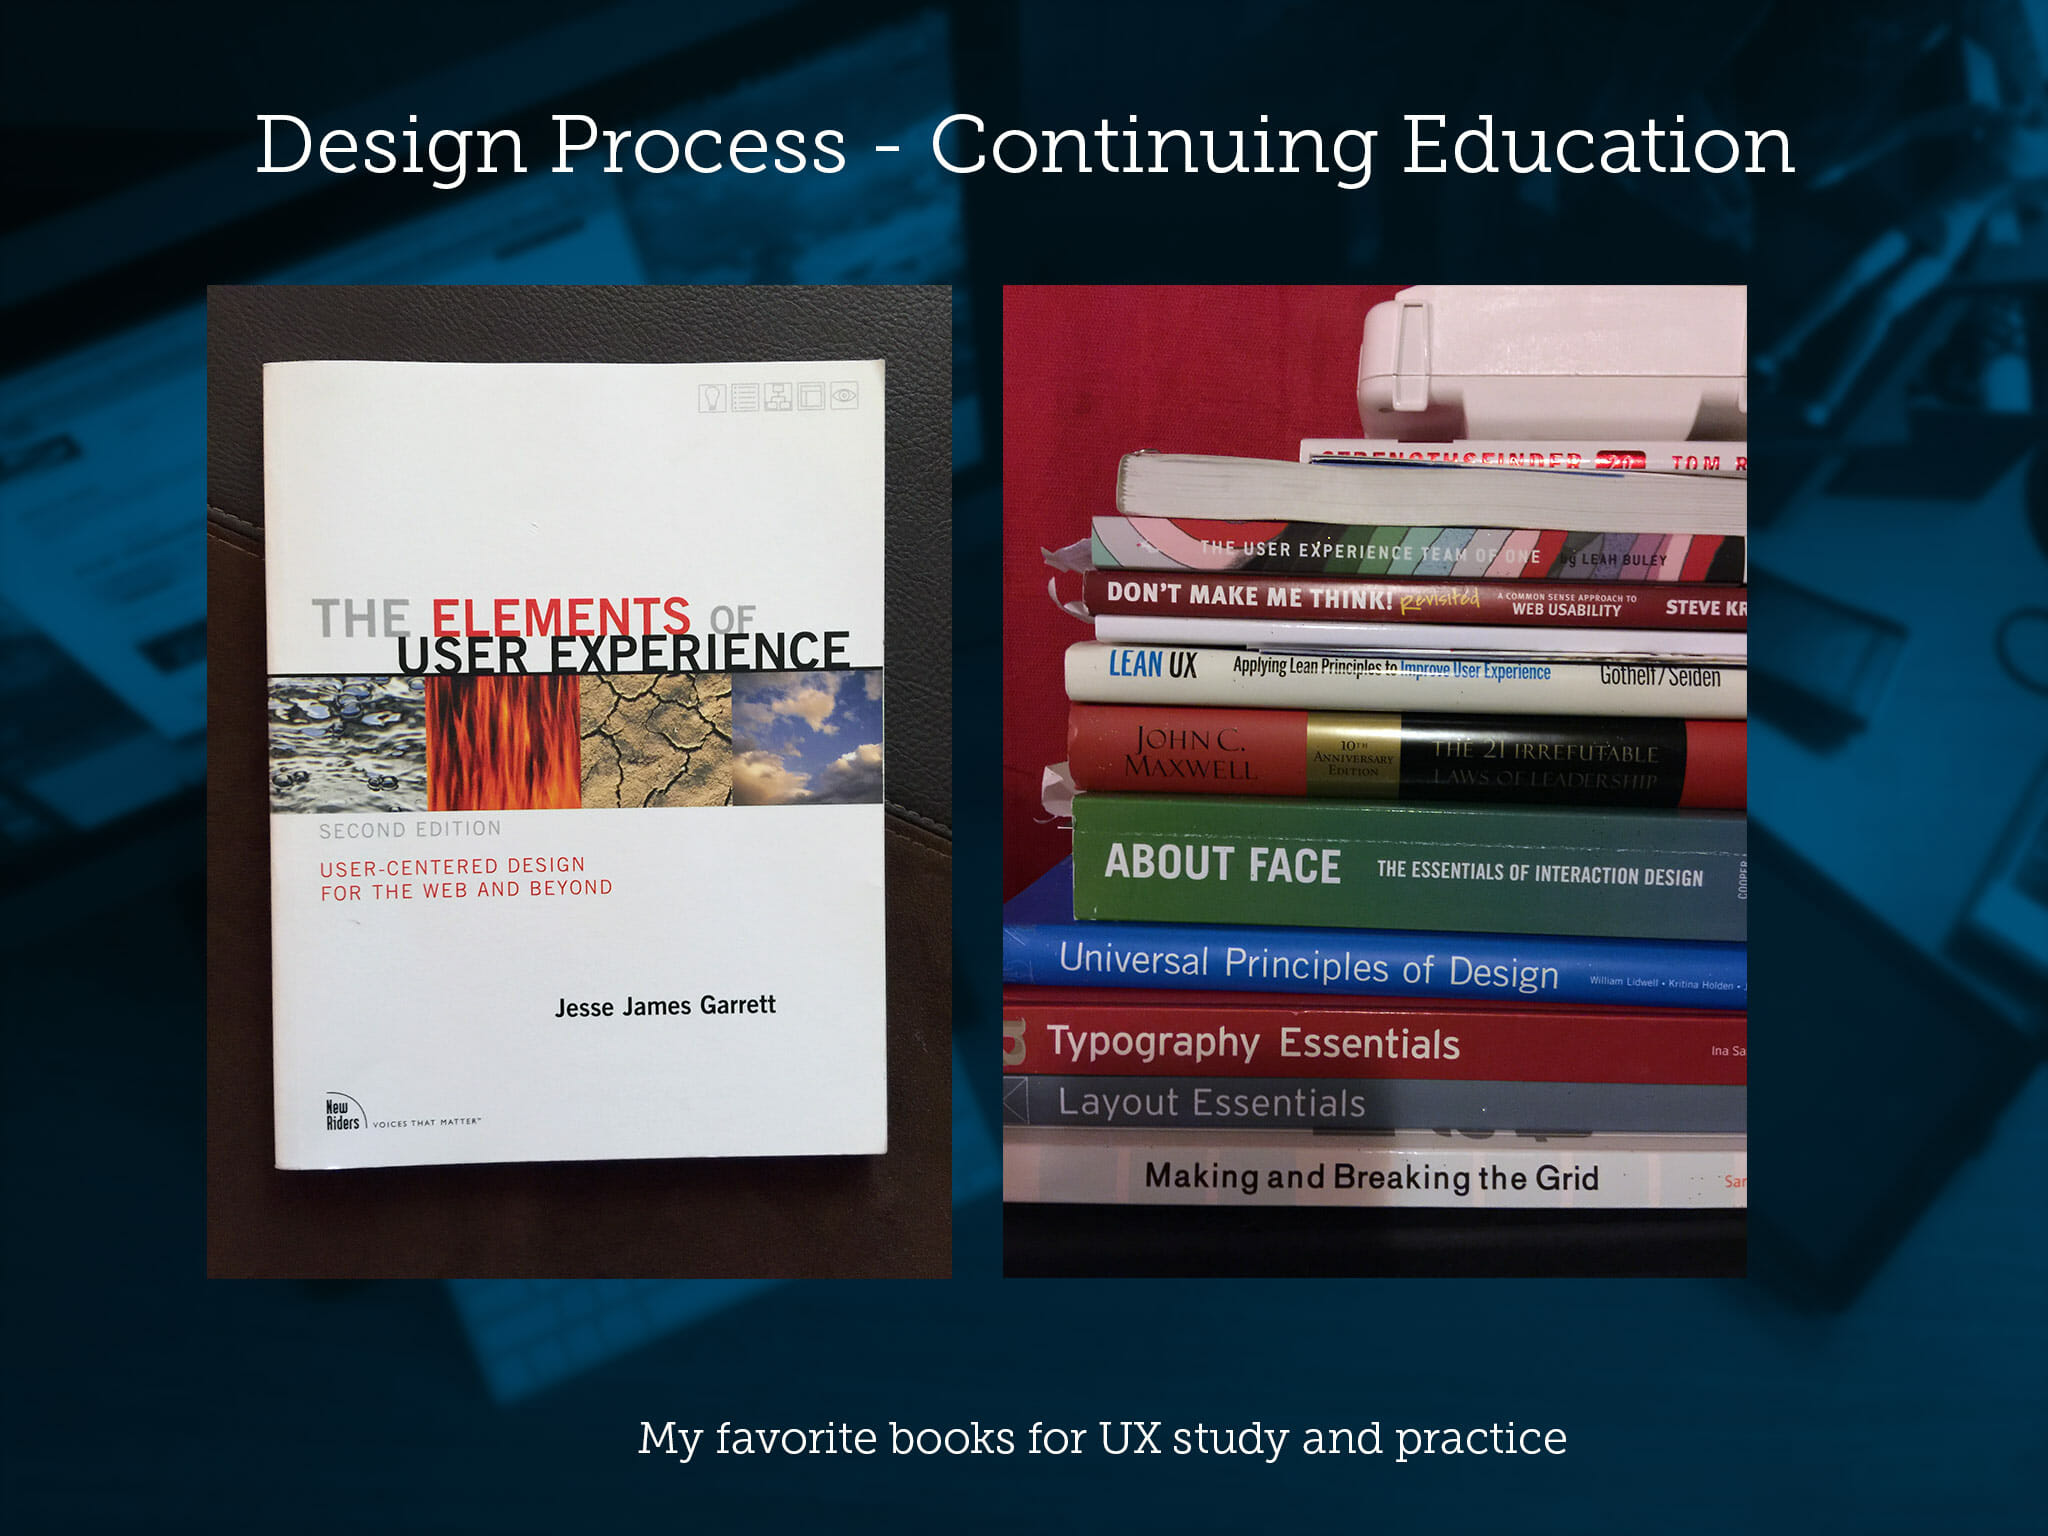 designprocesseducation